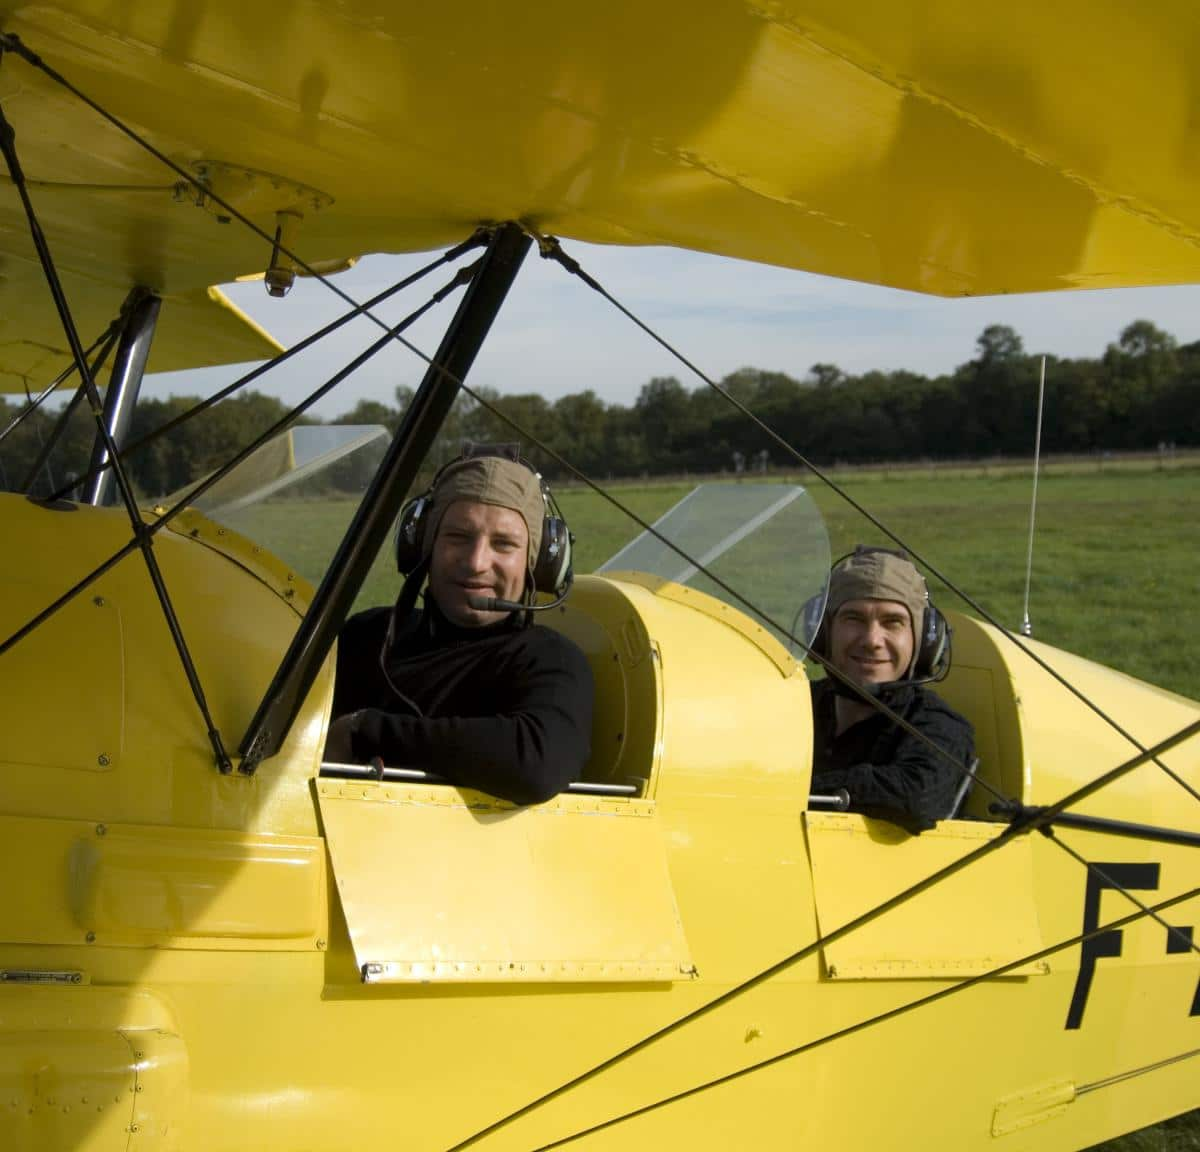 Frédéric and Raphaël in tha belgian plane called Stampe in Château-Thierry